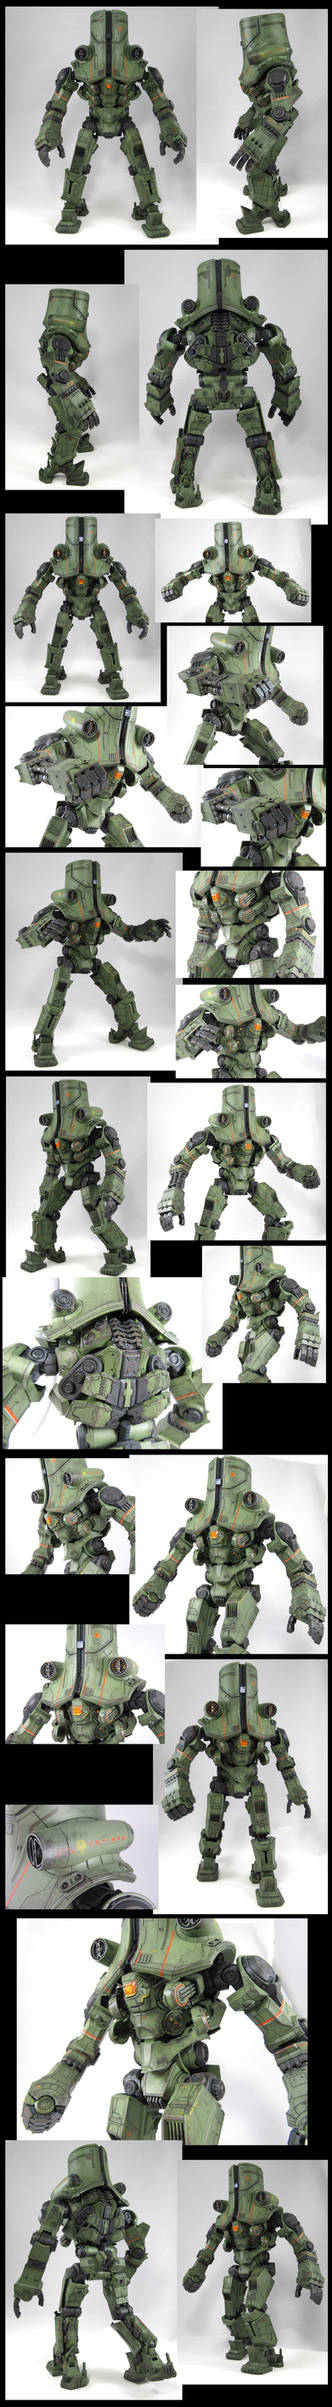 Cherno Alpha - Plamax Model kit - Painted build